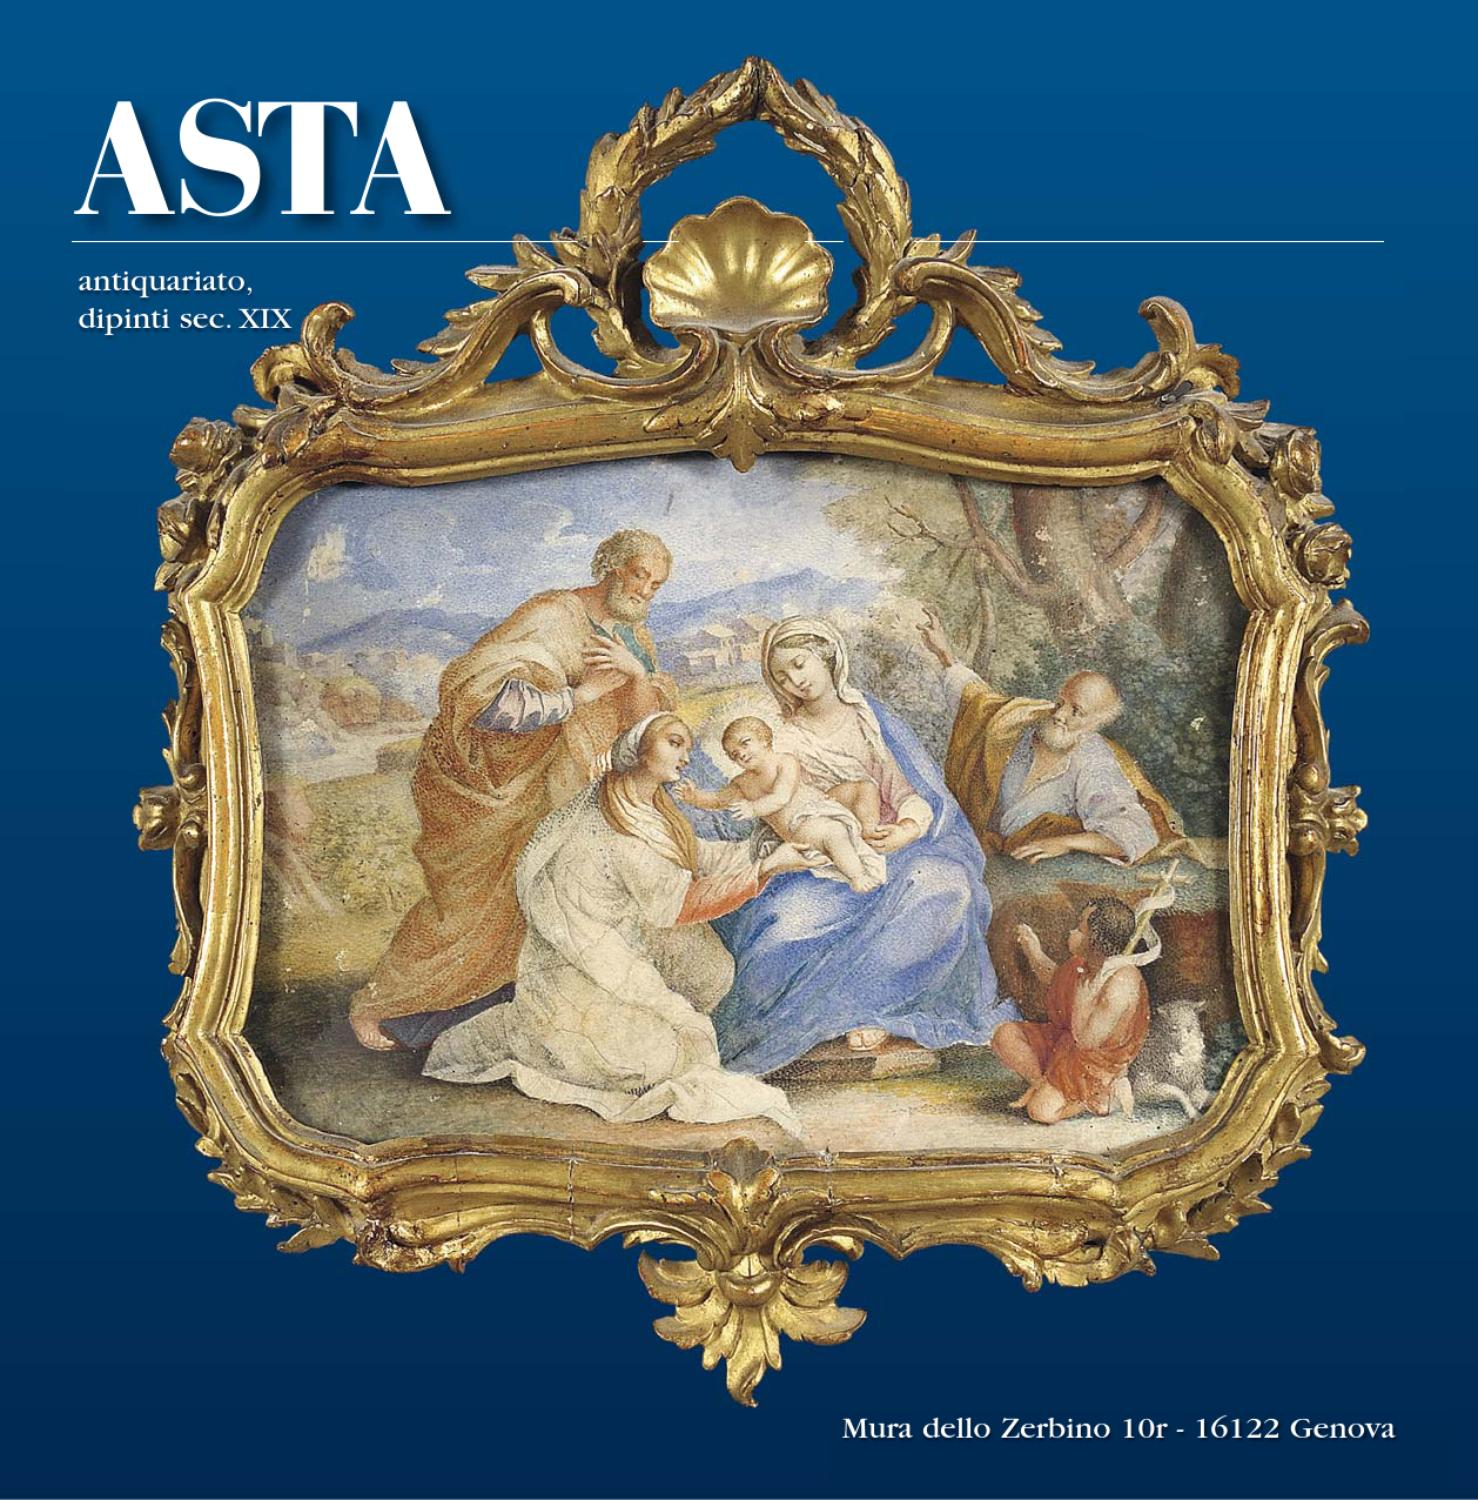 Asta di antiquariato e dipinti antichi by aste boetto issuu for Antiquariato vendita